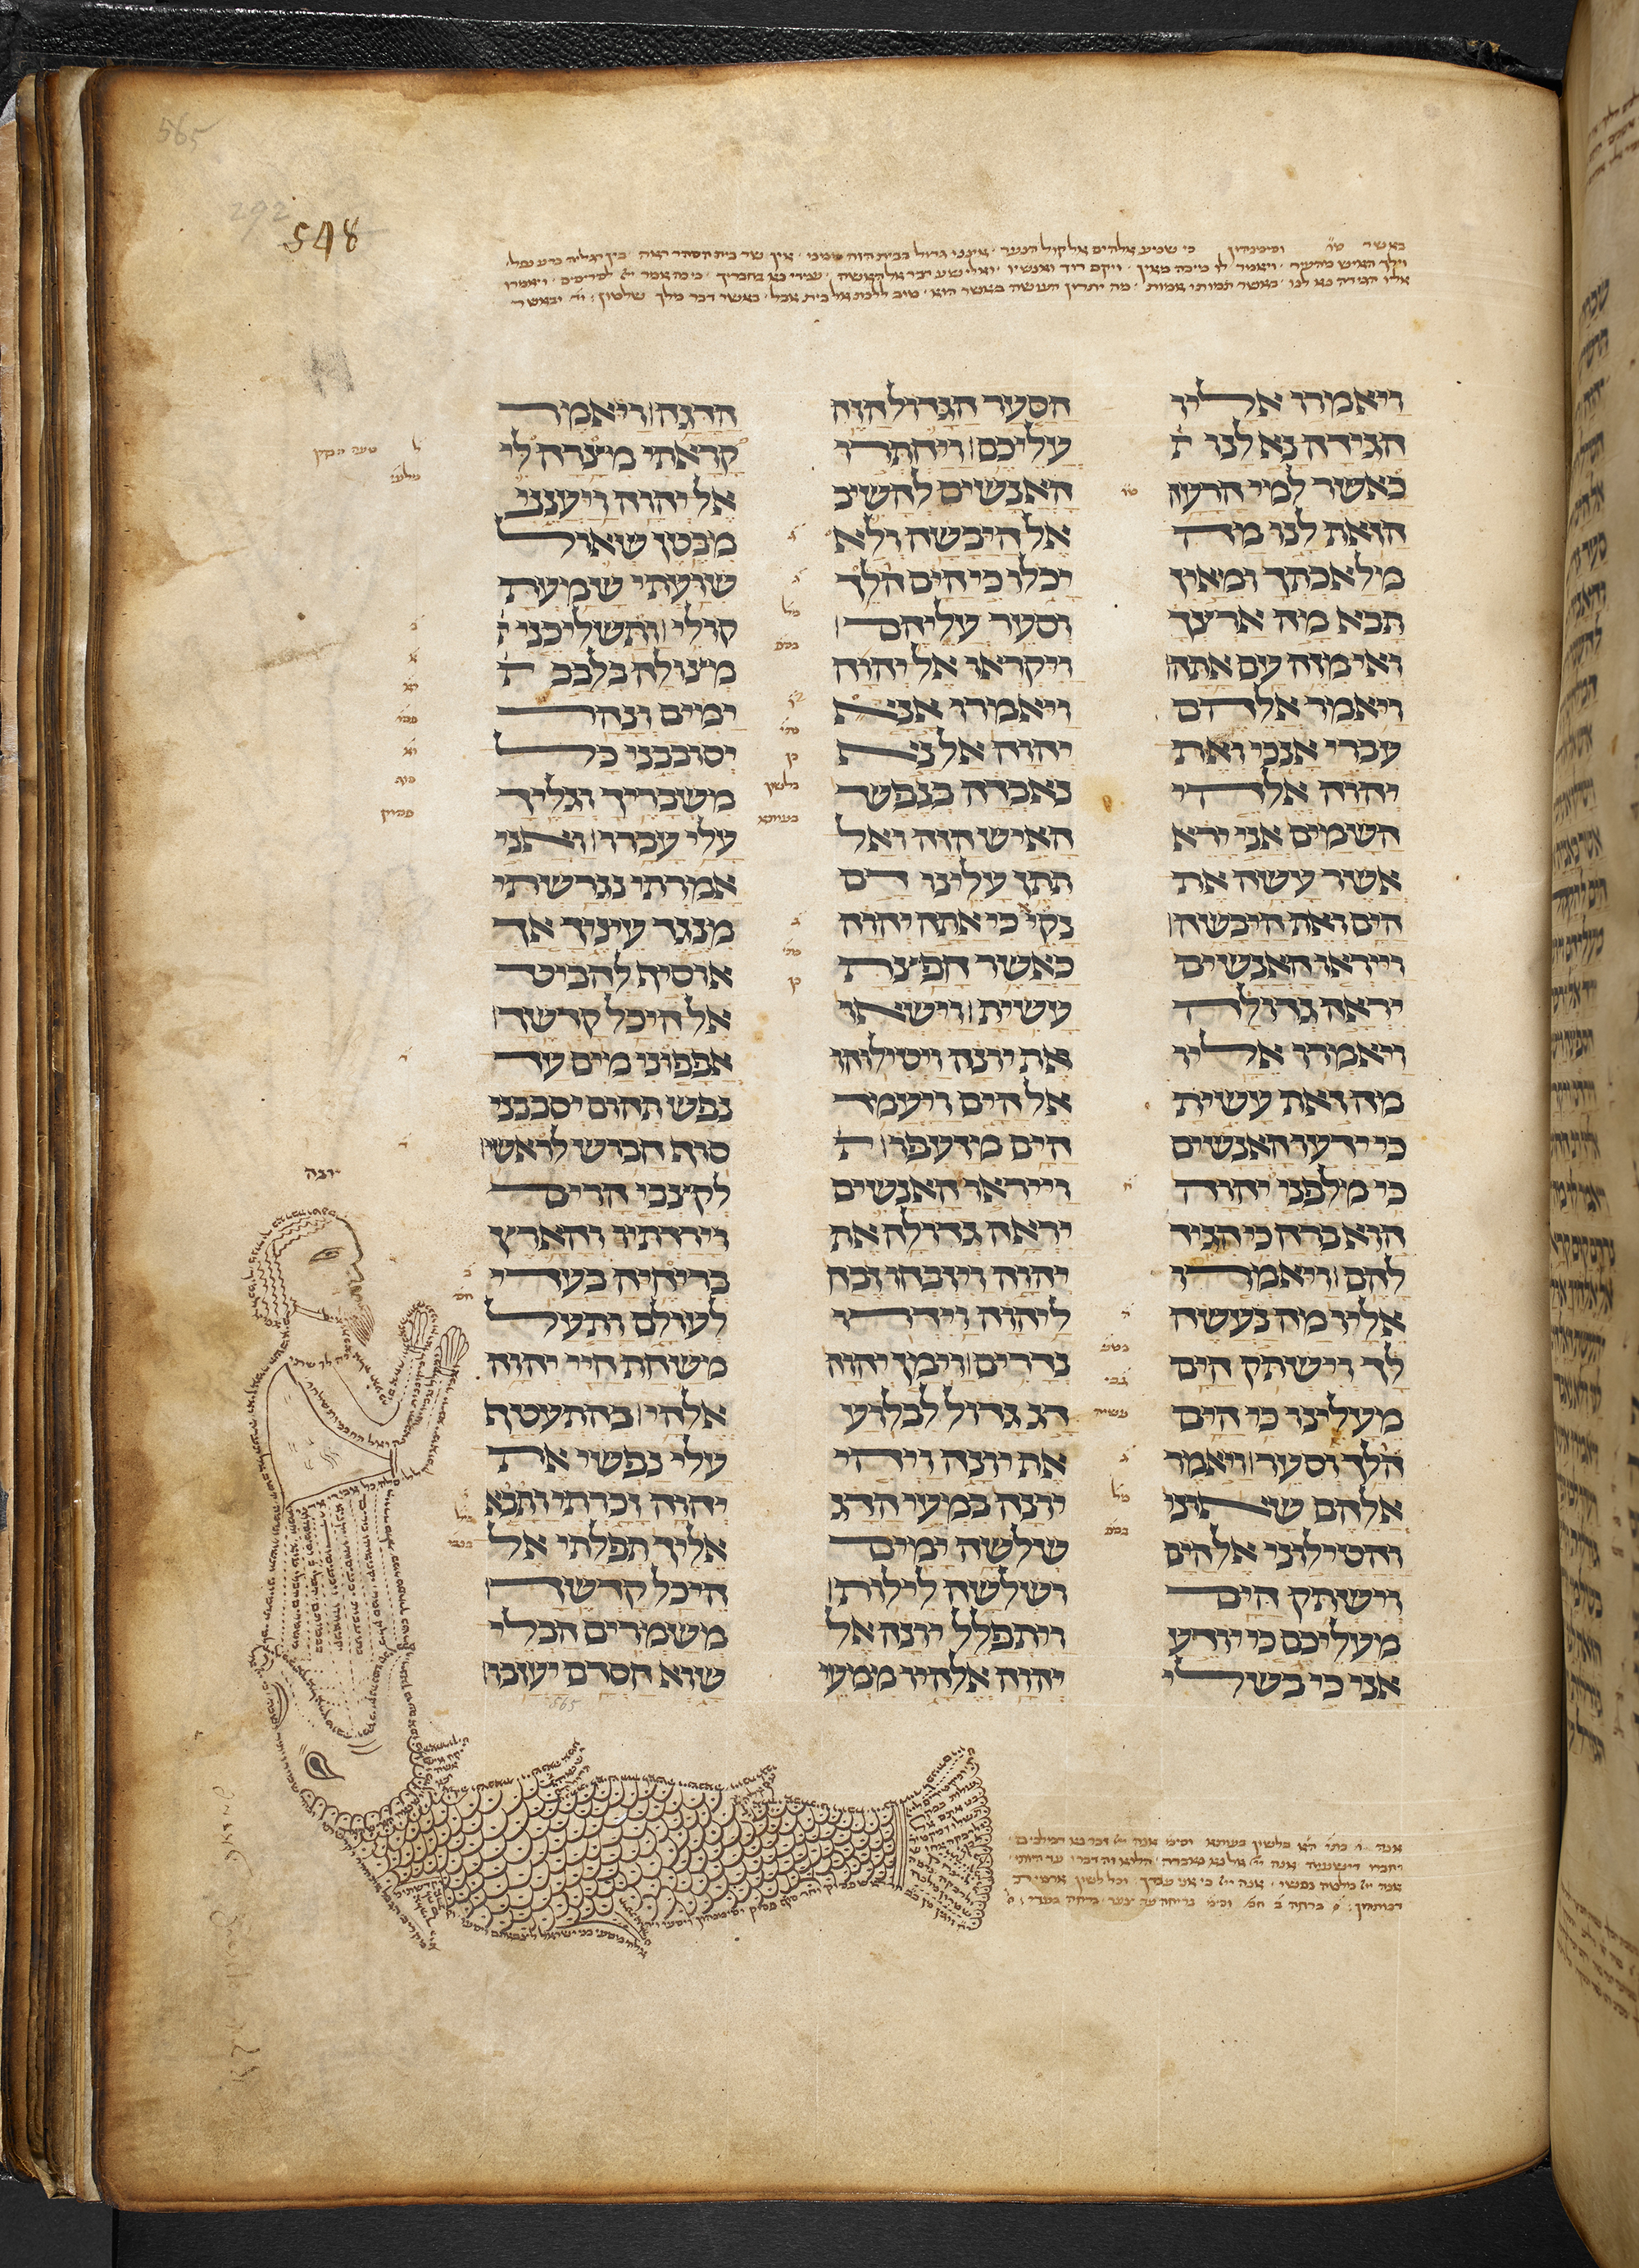 Jonah inside the fish's mouth. Jonah Pentateuch, Germany, 2nd half of 13th century CE, Add MS 21160, Hebrew Manuscripts Digitisation Project, British Library